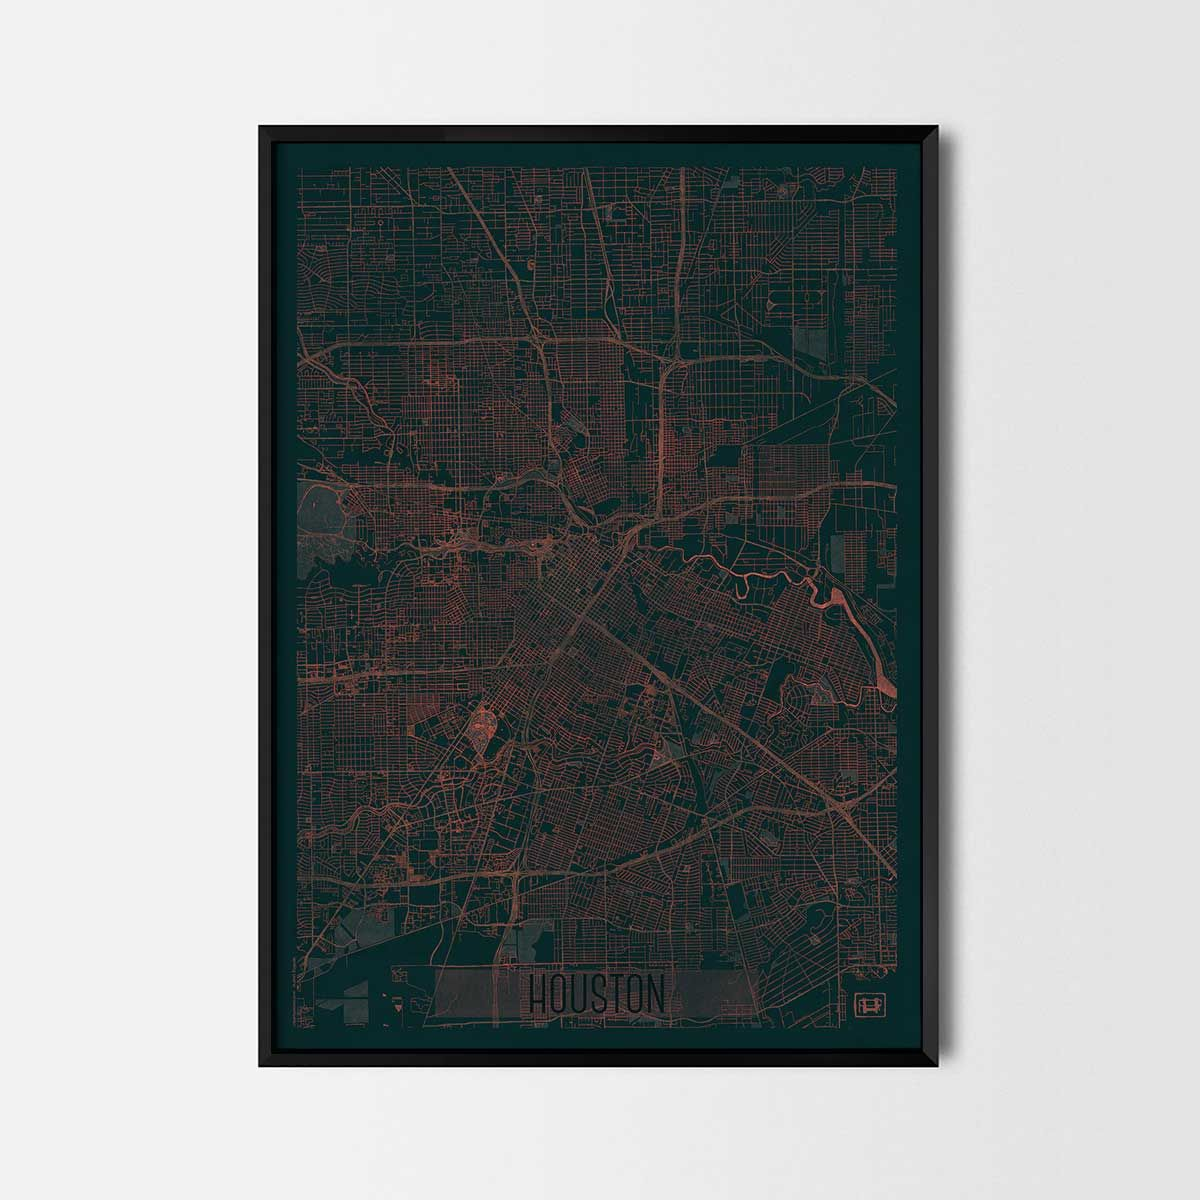 Houston Map Framed%0A Houston city posters  Art posters and prints of your favorite city  Unique  design of